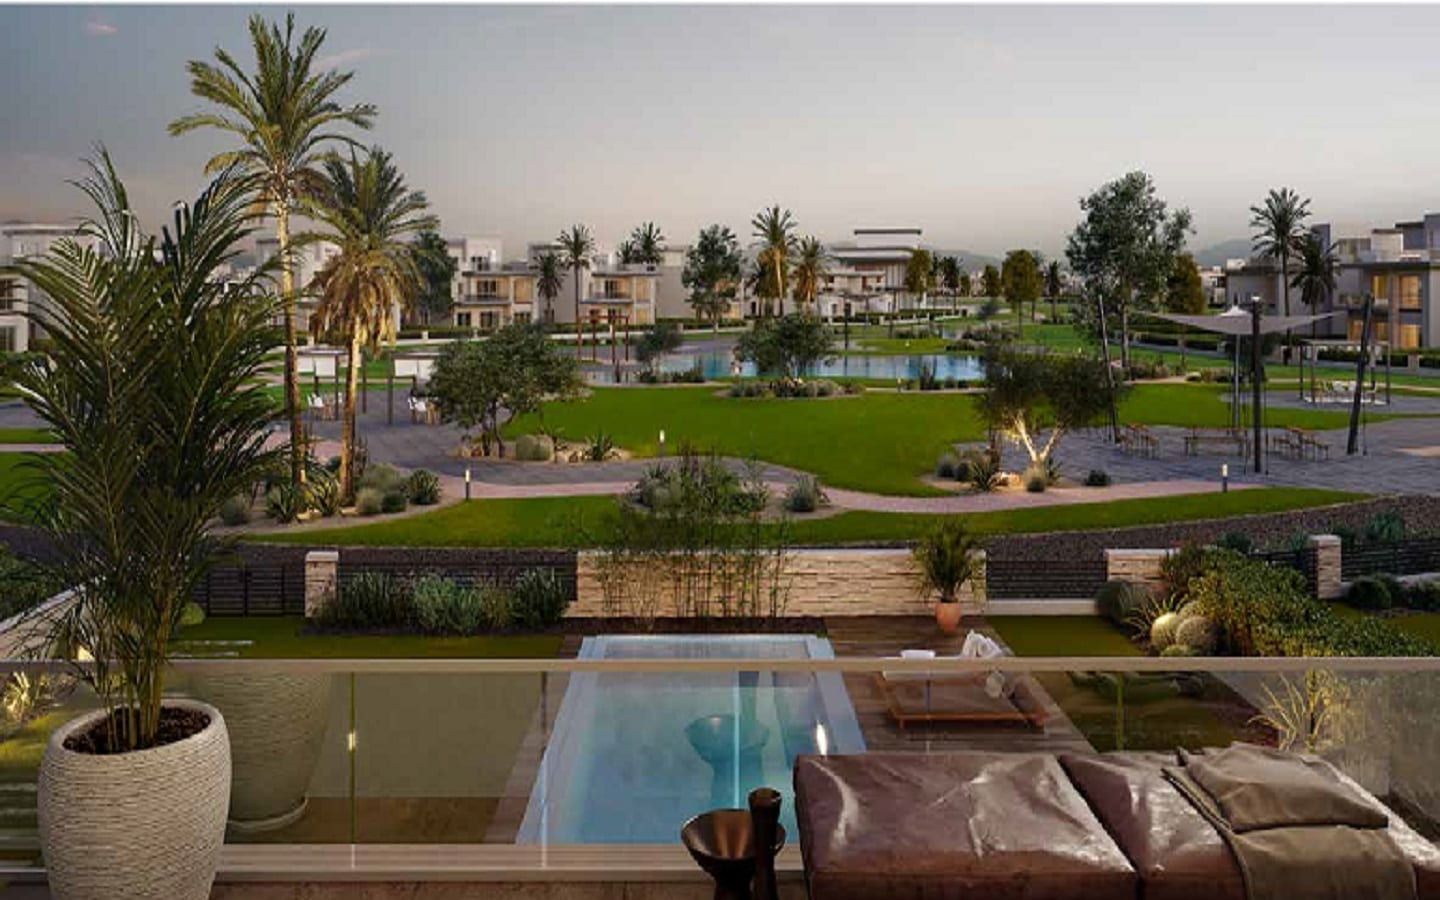 Sodic Estates New Project in New Sheikh Zayed Real Estate- The Estates New Project by Sodic Development- The Estates Master Plan- The Estates Location- The Estates Prices -Town House - Twin House - Villa For Sale Sodic Villas- 8 Gates Real Estate Egypt